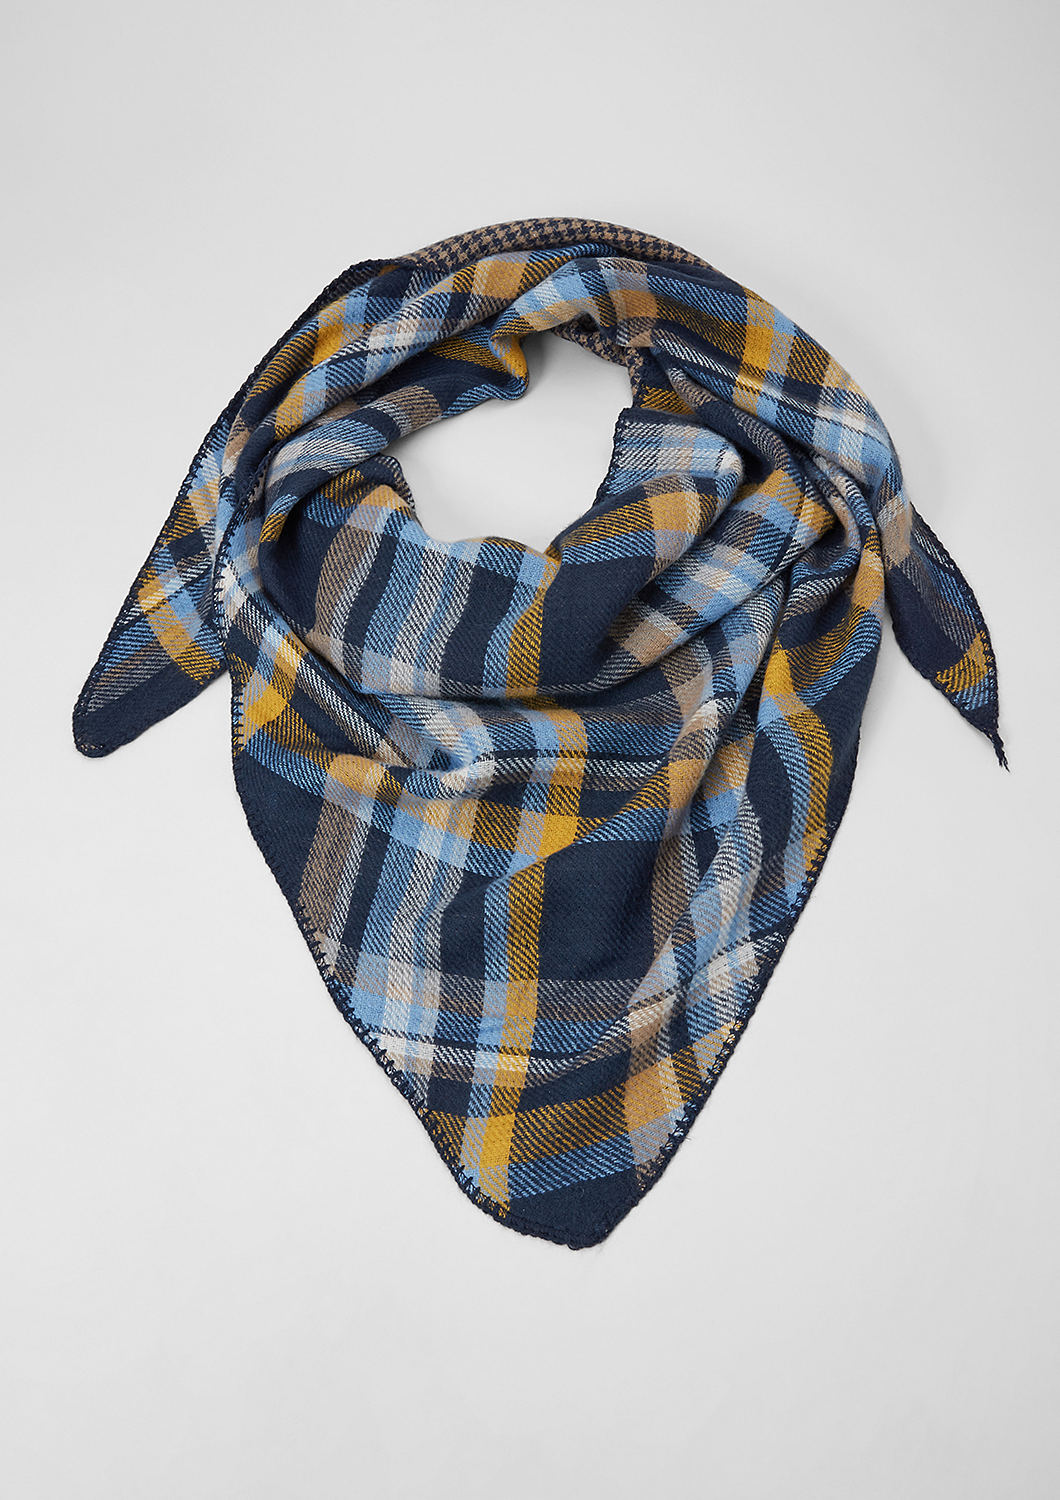 new products d1fad fd200 Buy Woven triangular scarf | s.Oliver shop